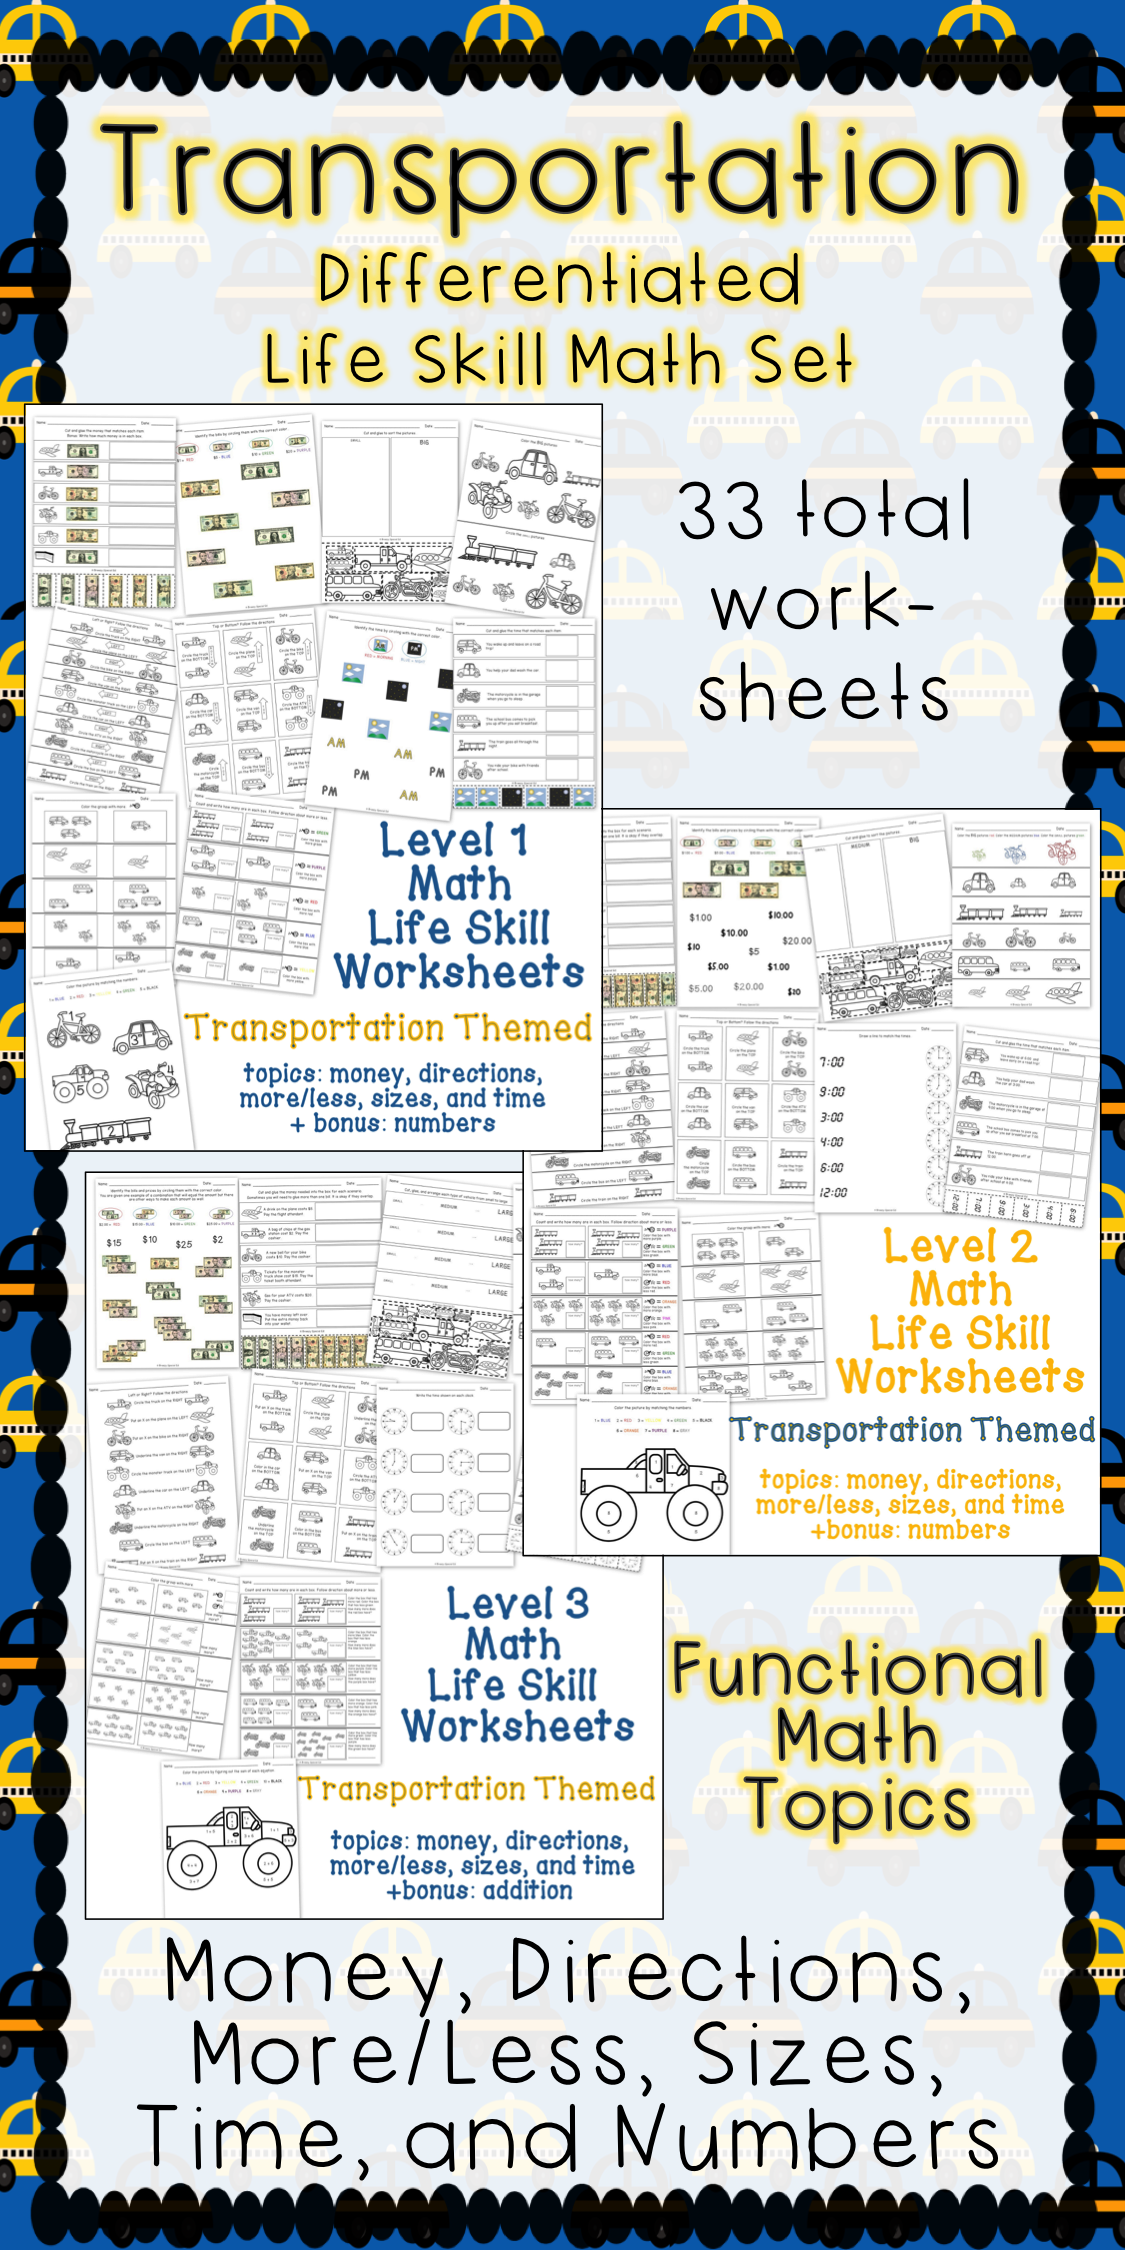 Uncategorized Life Skills Math Worksheets differentiated life skill math pack transportation of transportation